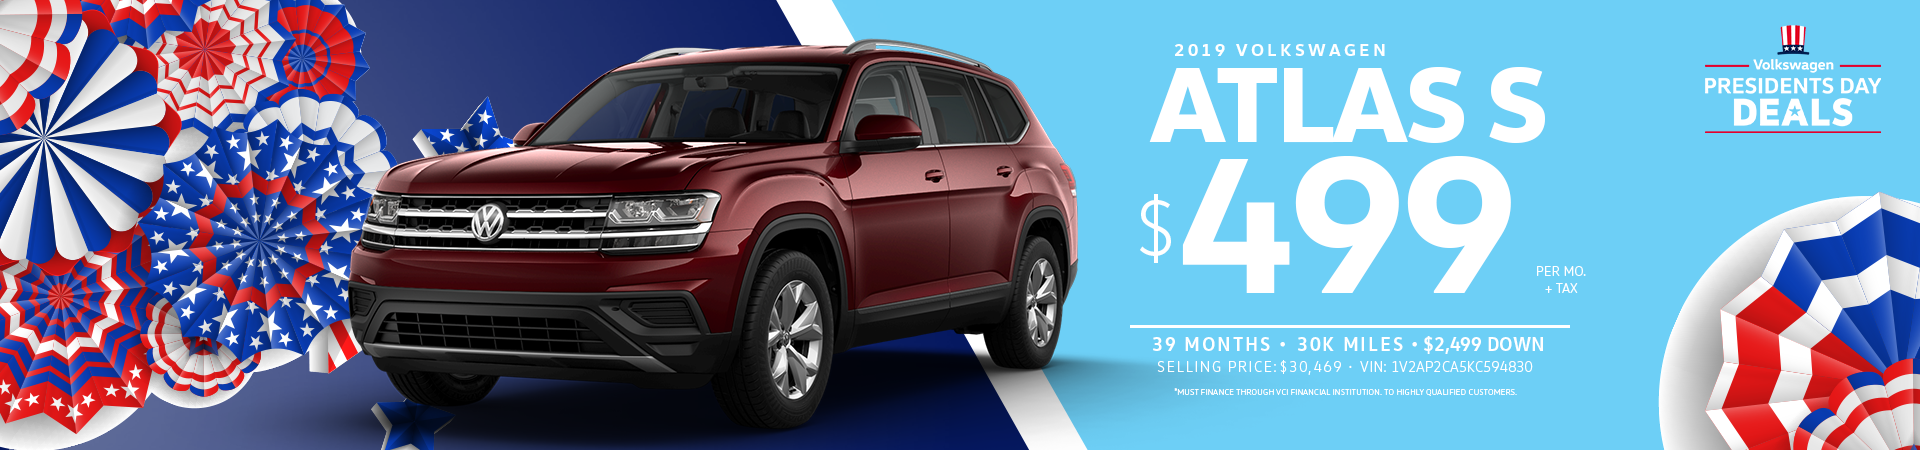 Lease a 2019 Atlas S for $499 a month